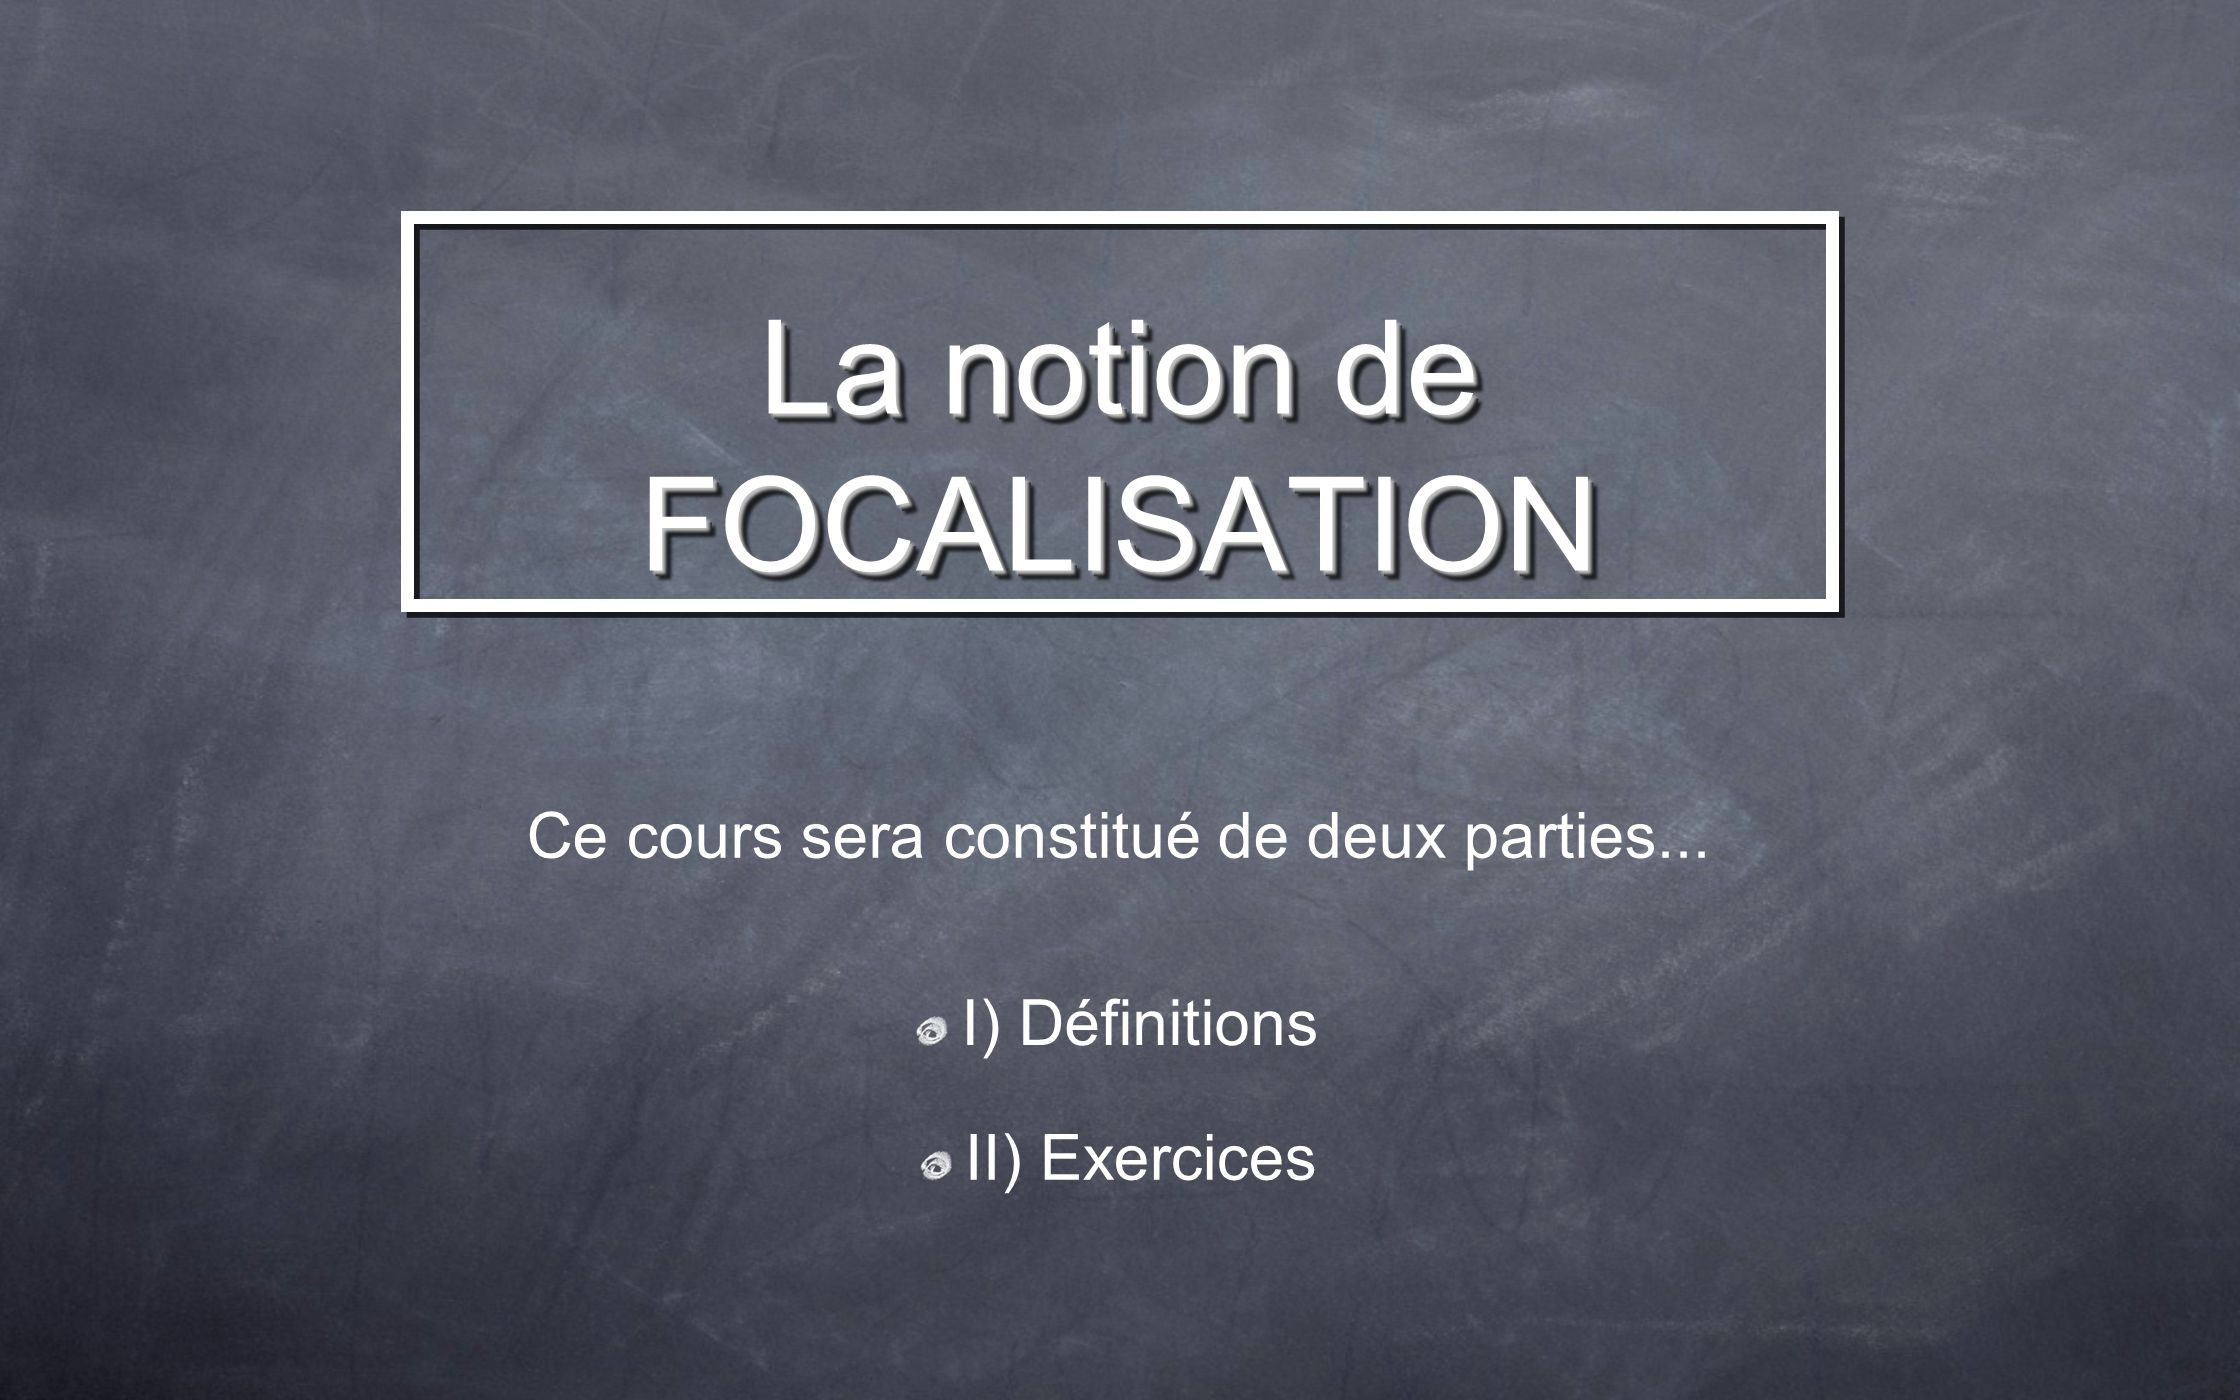 La notion de FOCALISATION